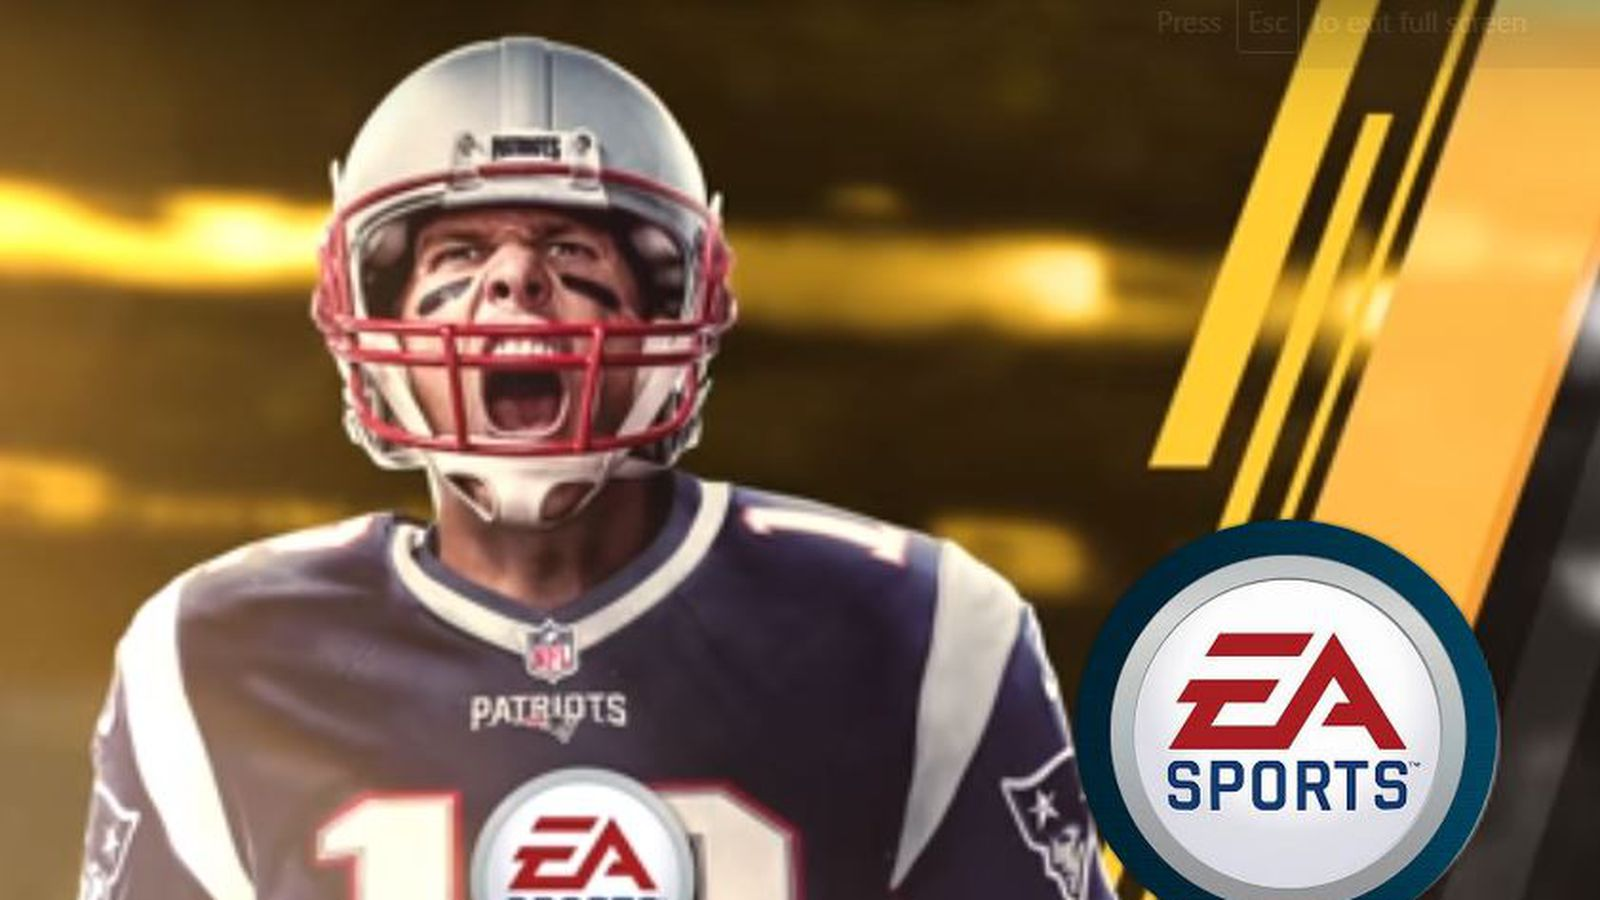 Madden 2018 Trailer - Turf Show Times